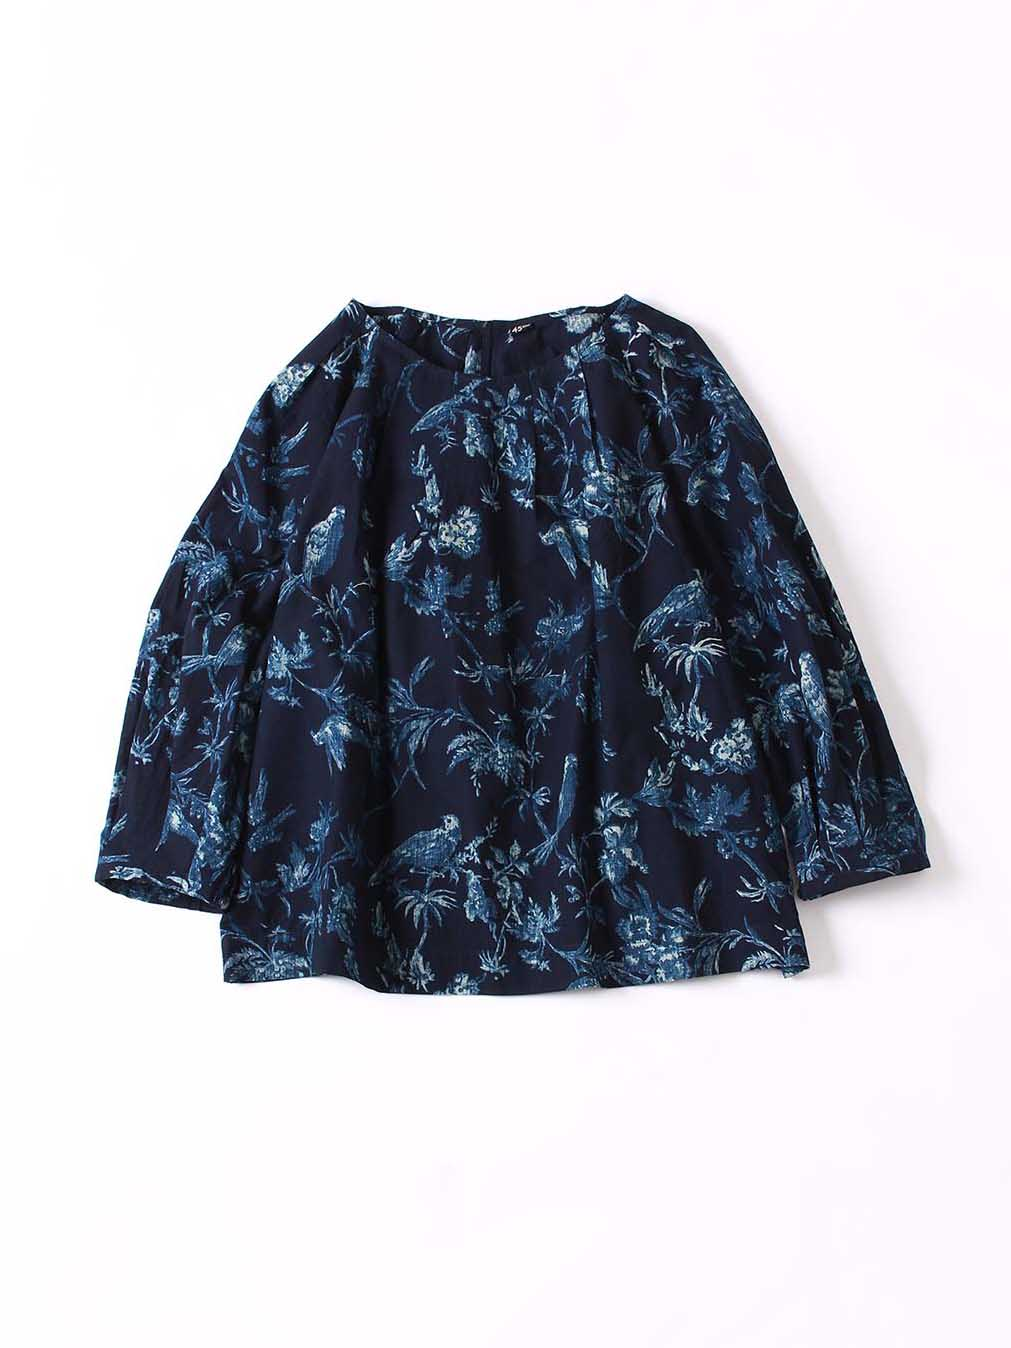 Indigo Tapet Flower Discharge Blouse